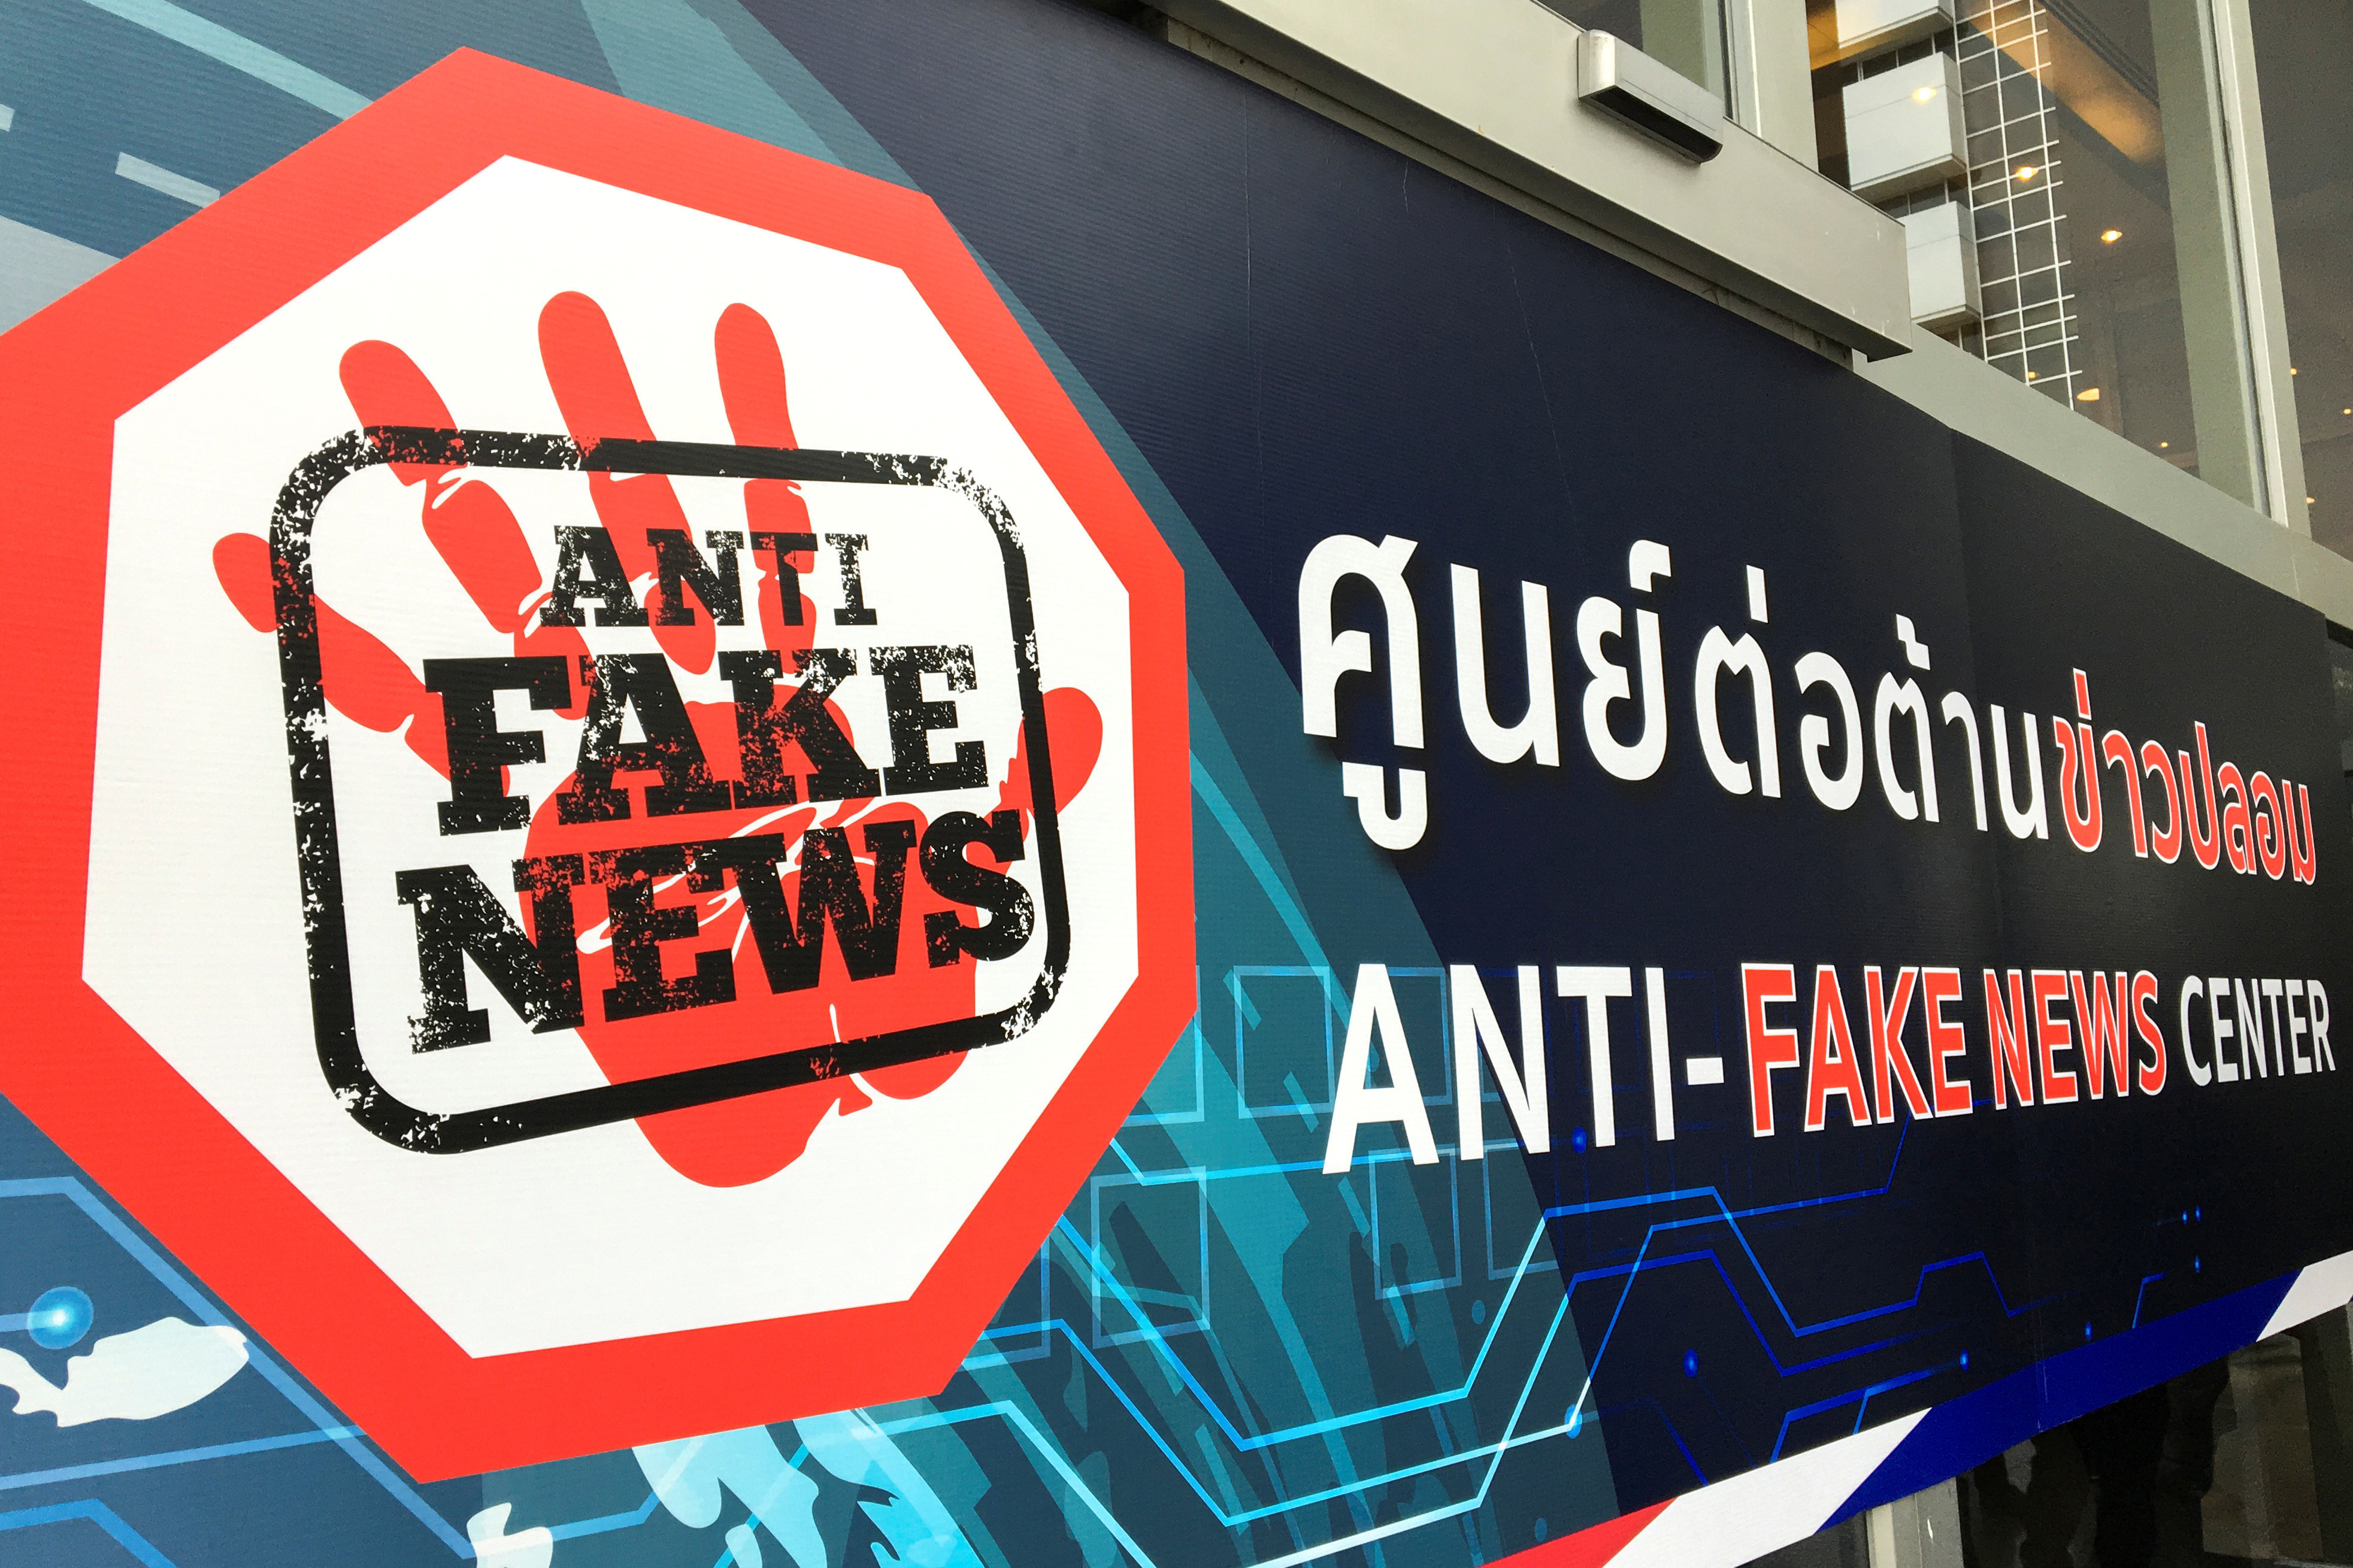 The sign of Anti-Fake News center is pictured in Bangkok, Thailand, November 1, 2019. REUTERS/Patpicha Tanakasempipat - RC1D1137DE30